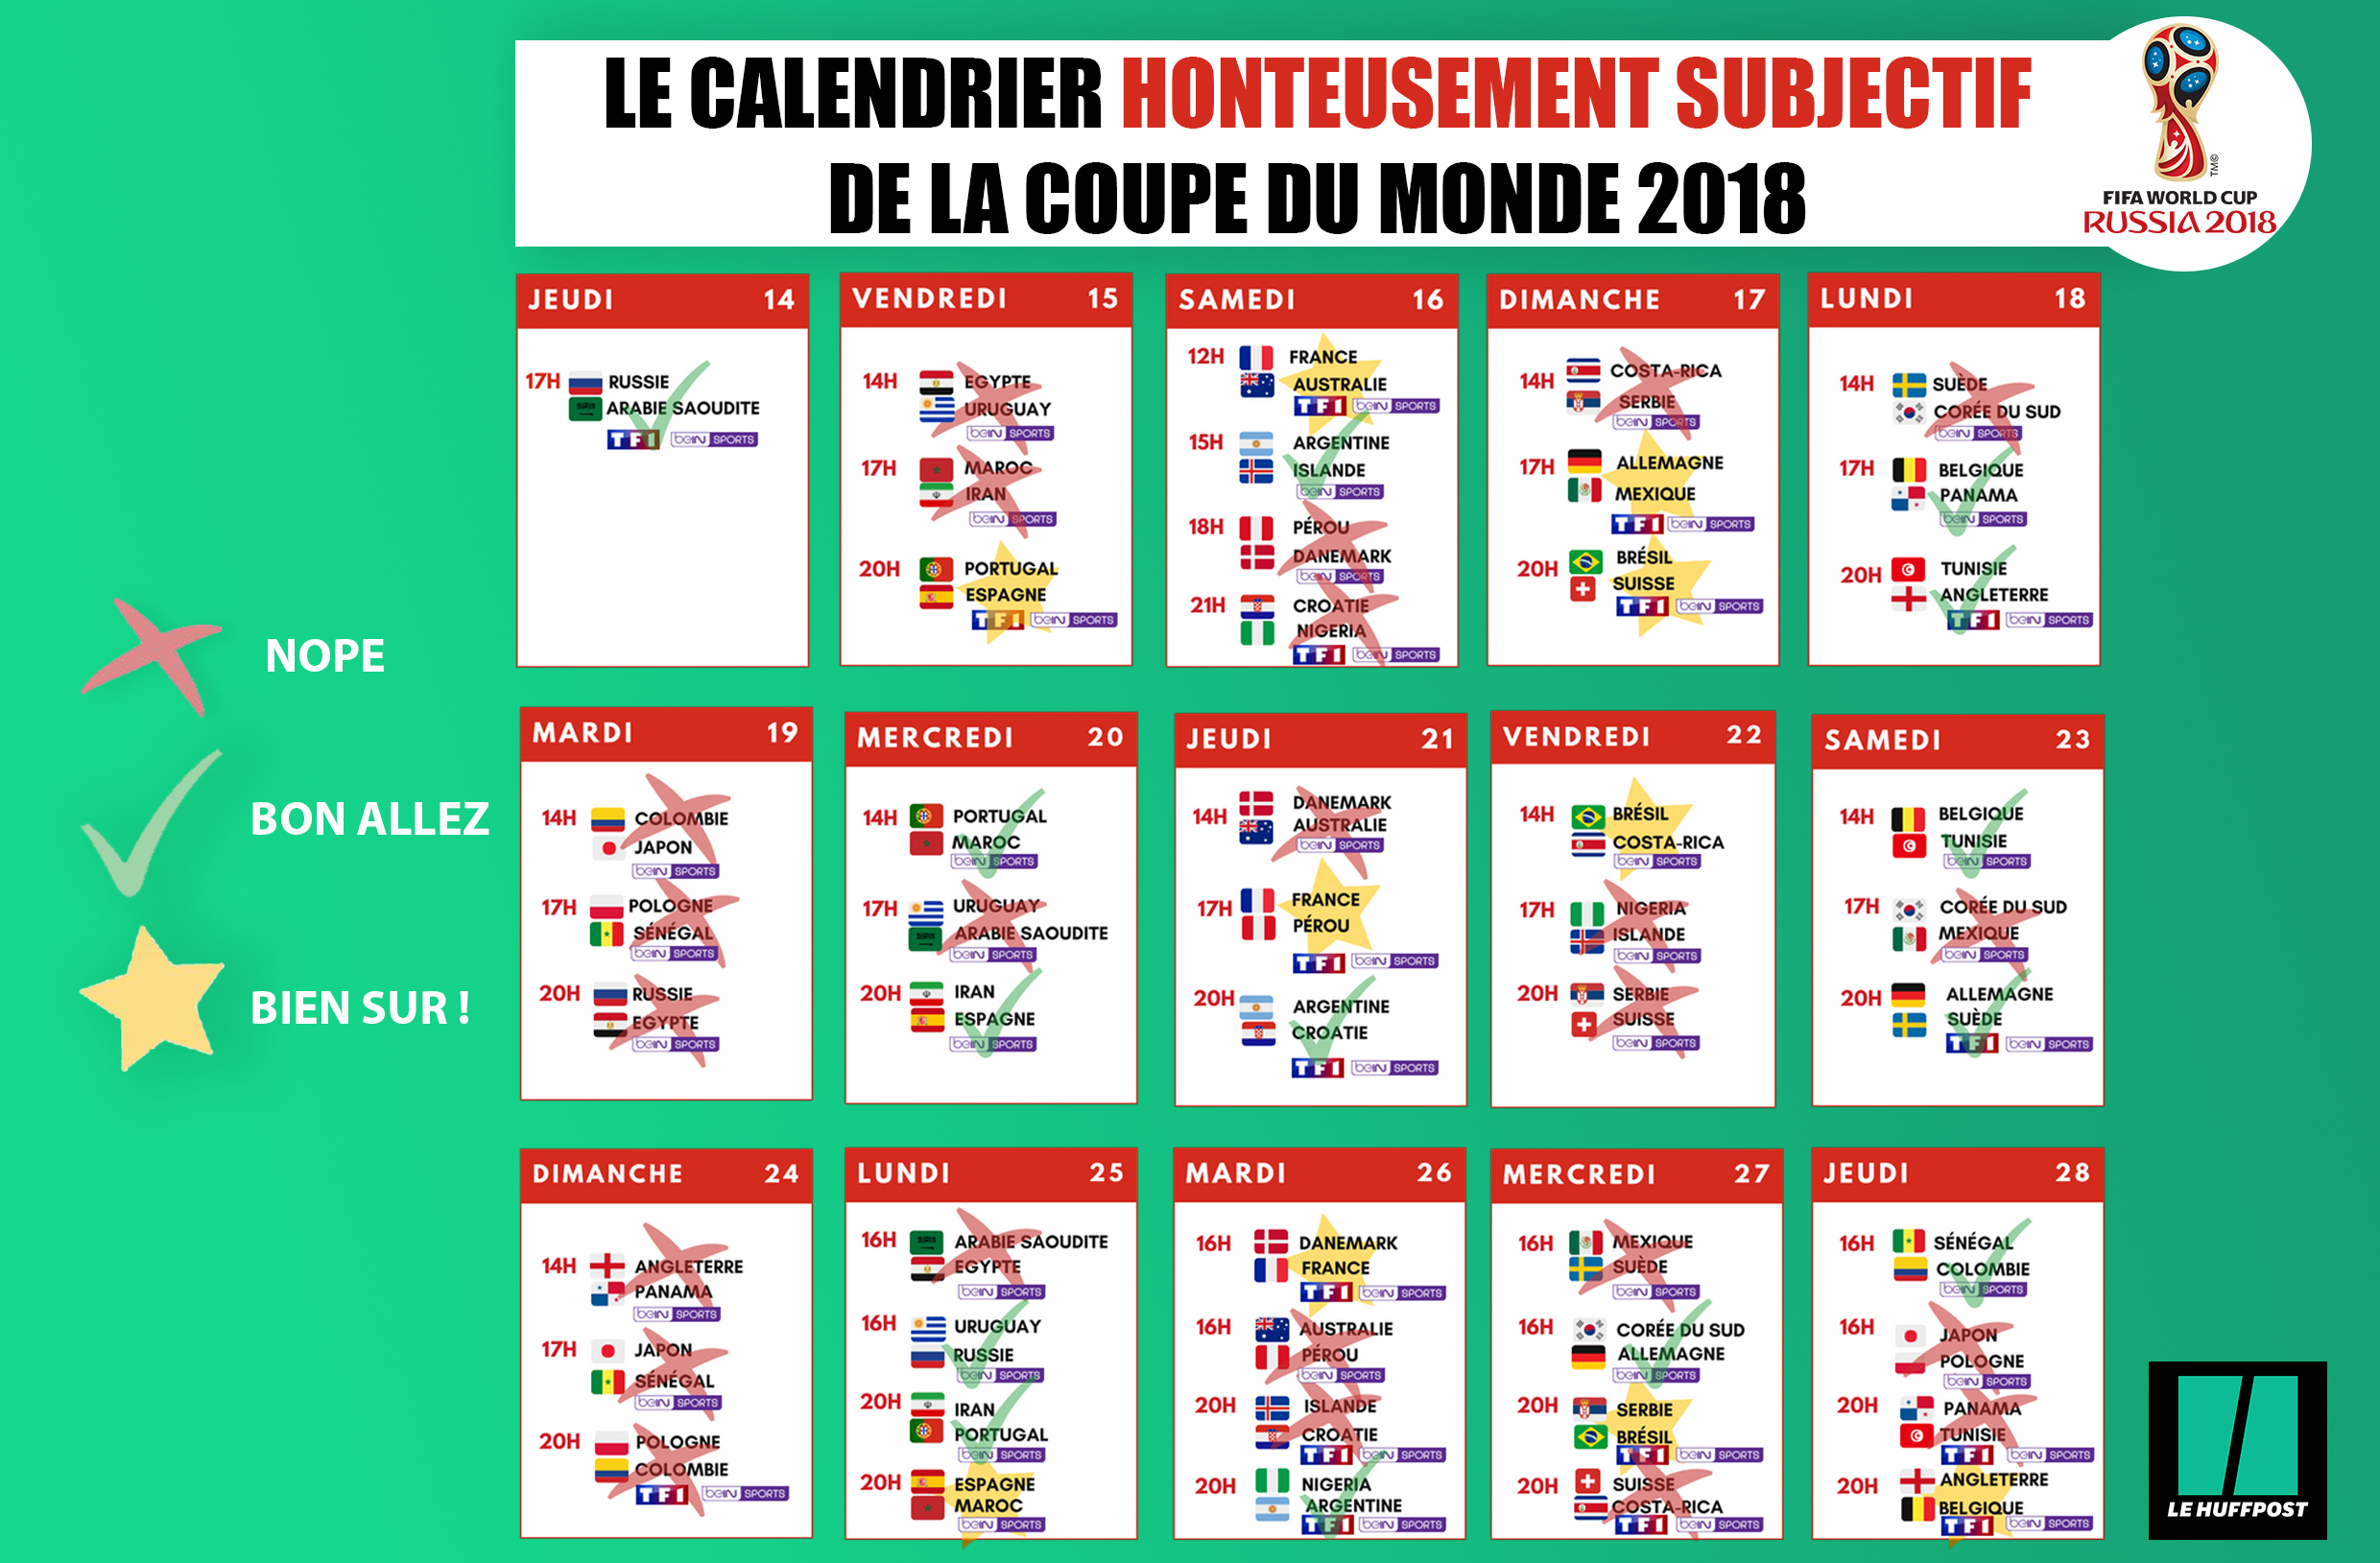 Coupe du monde 2018 le calendrier honteusement subjectif - Calendrier match france coupe du monde ...